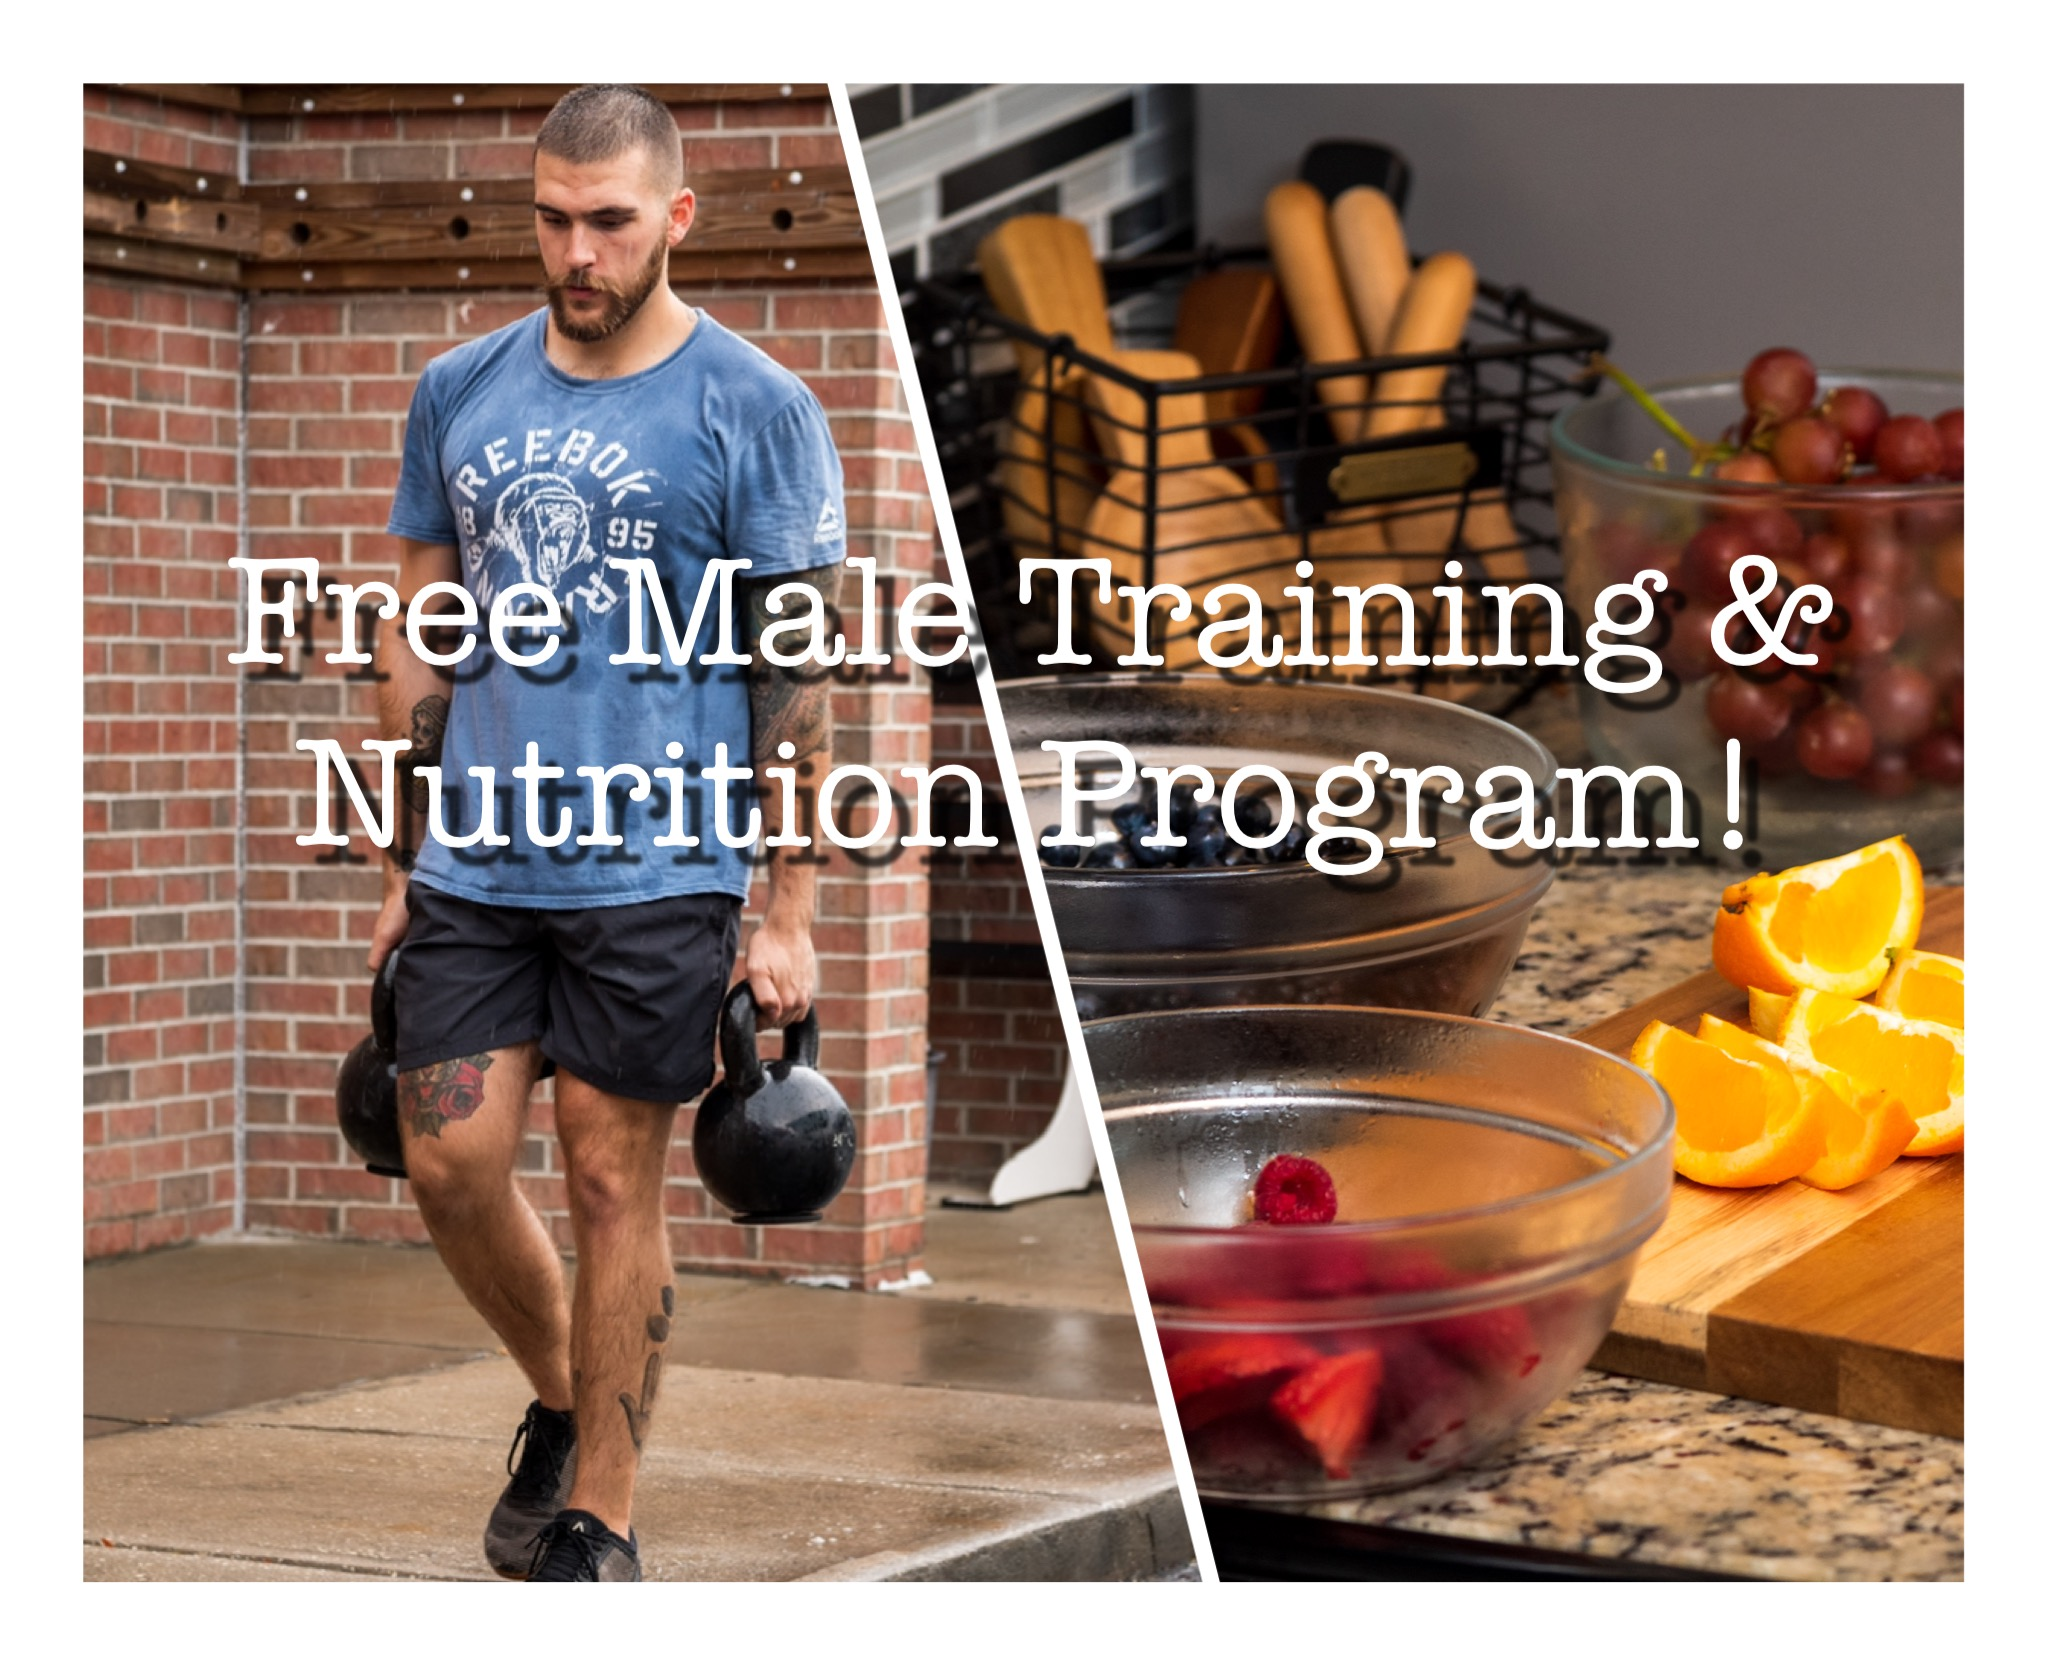 Free Male Training & Nutrition Program